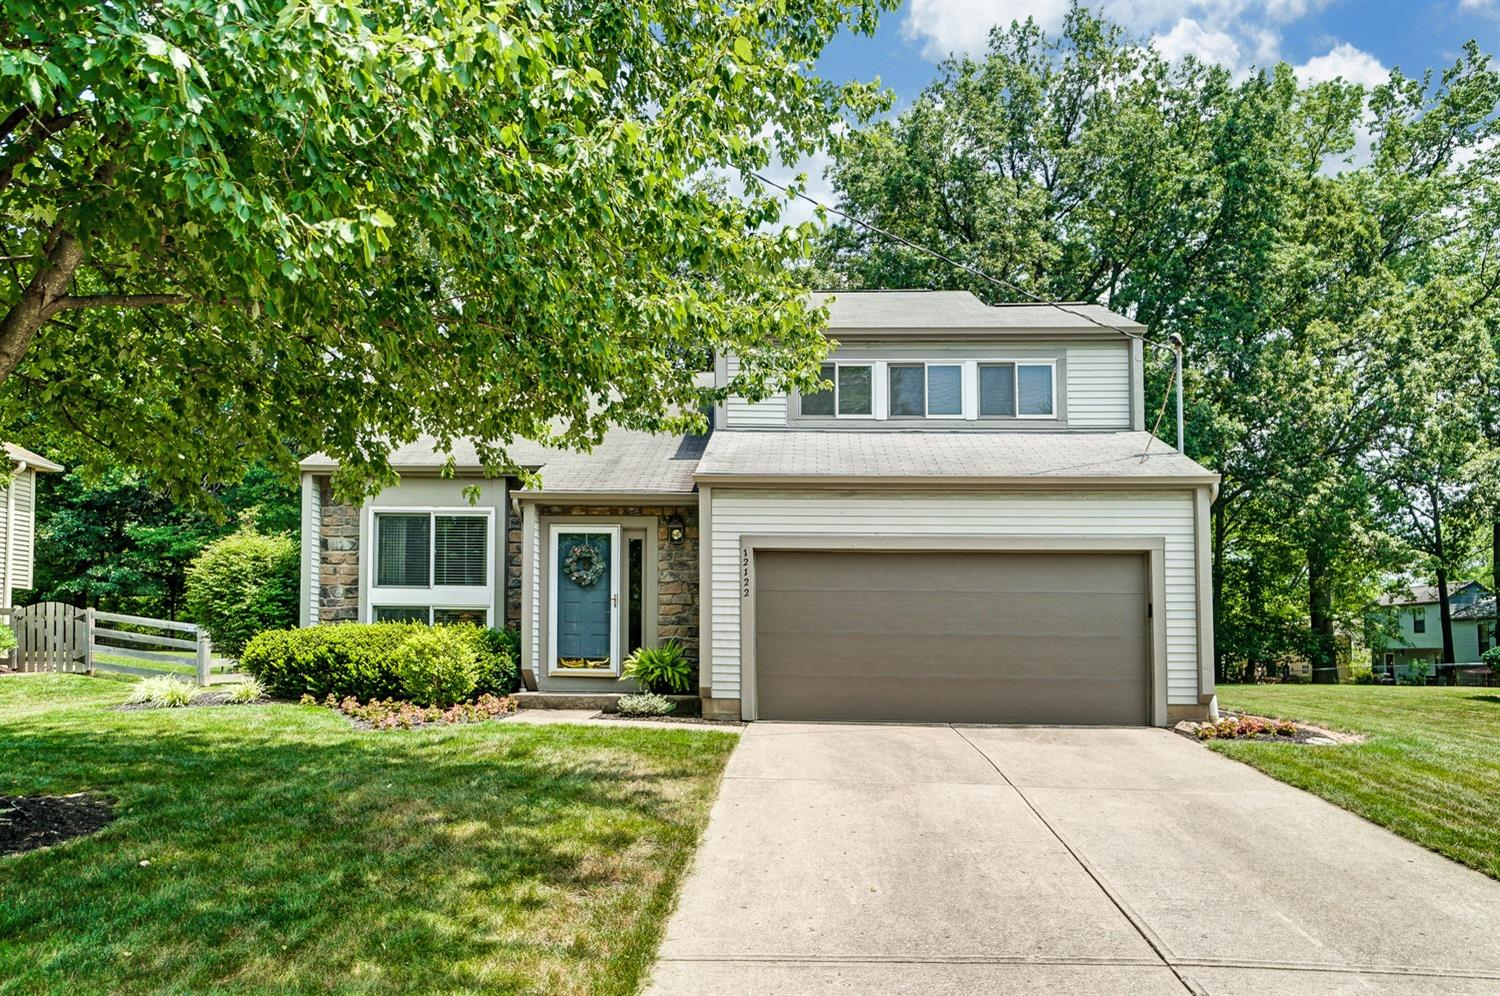 Property for sale at 12122 Stillwind Drive, Sycamore Twp,  Ohio 45249